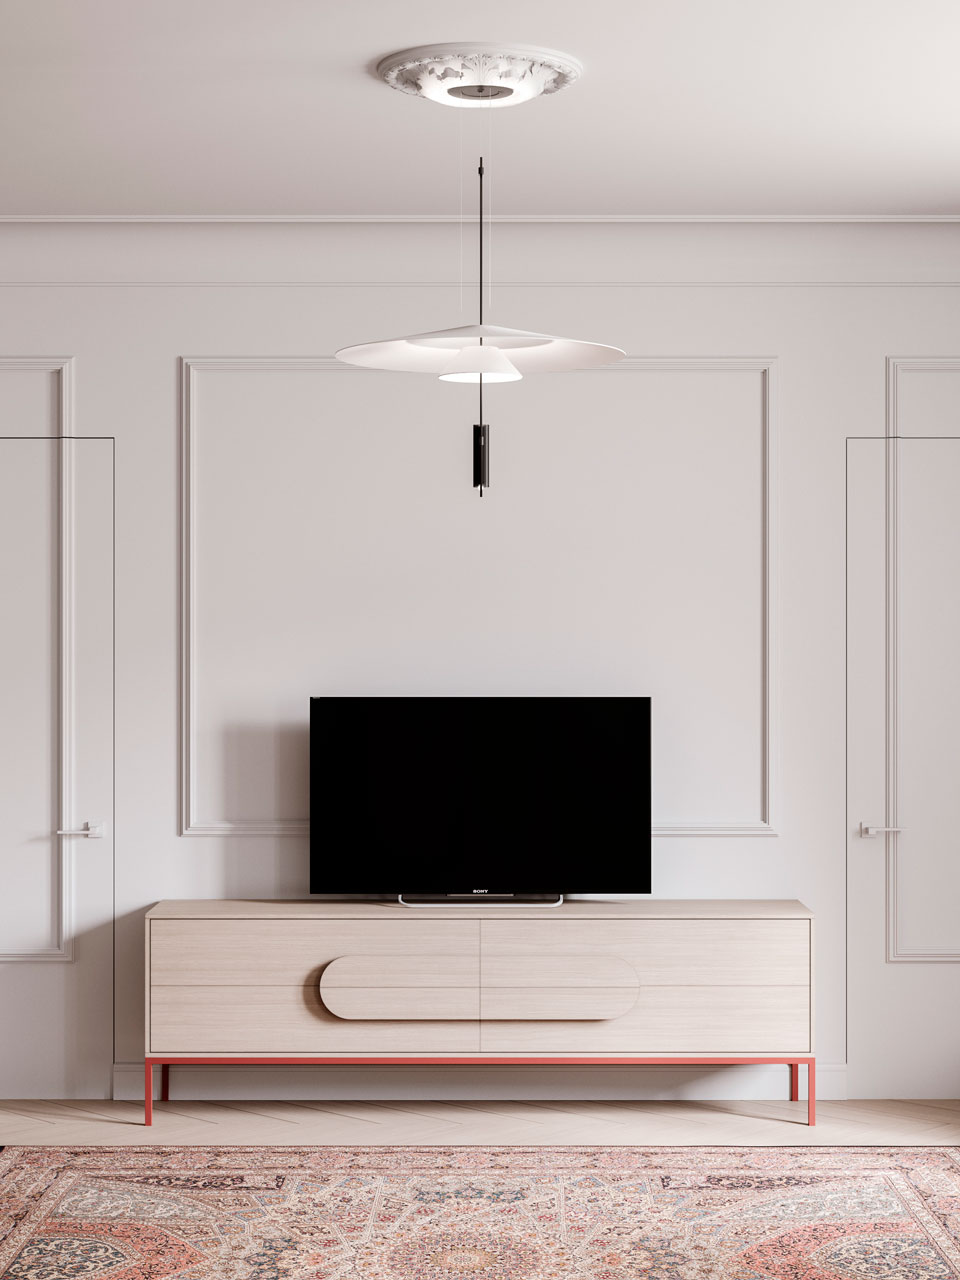 Vibia - SpacesCool Breezy Spaces - Flamingo